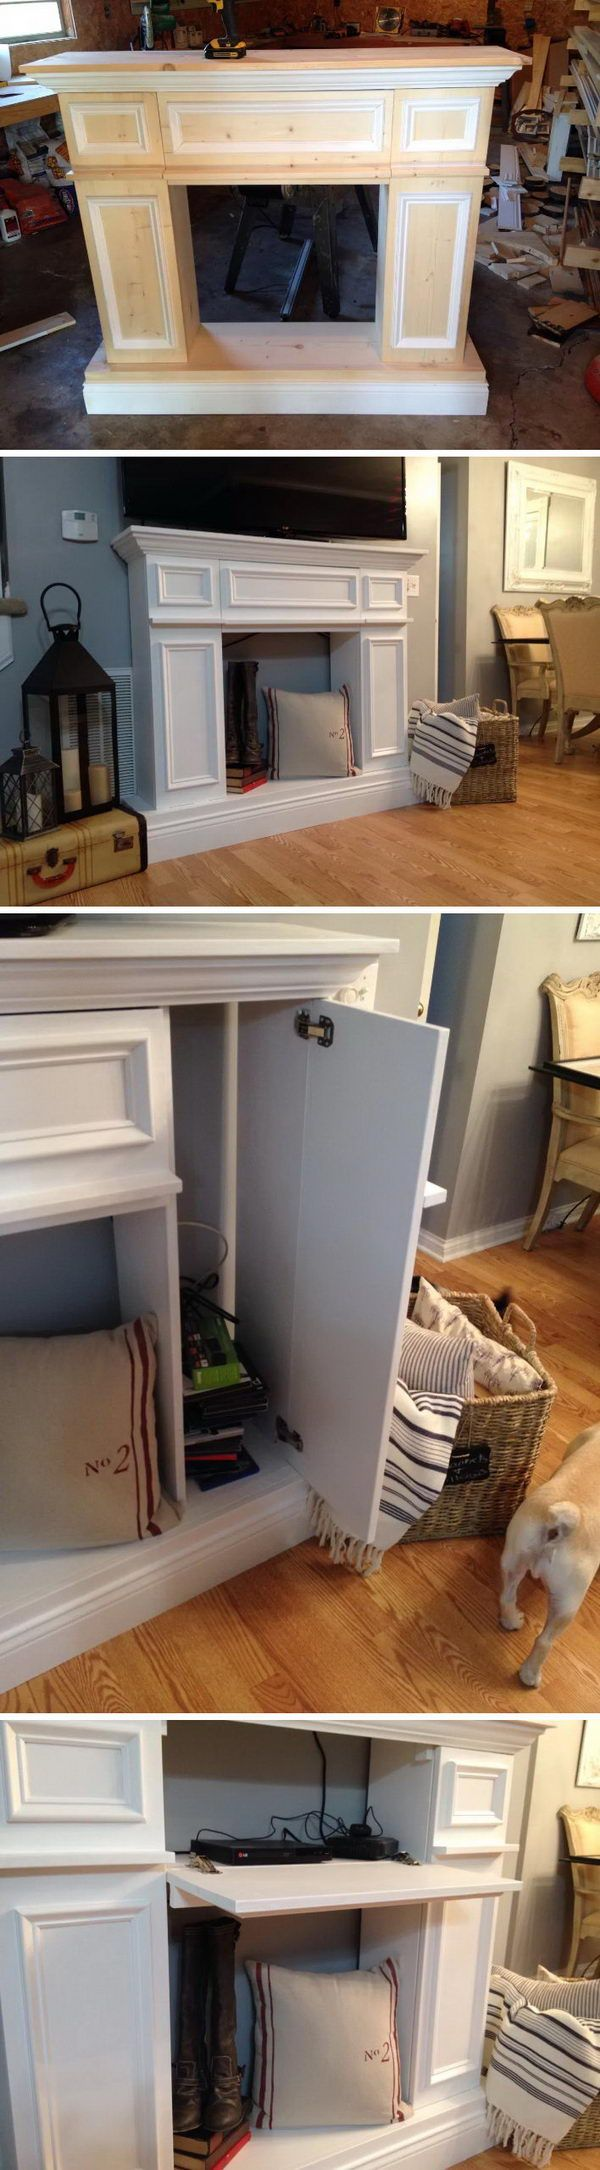 chic hidden storage ideas faux fireplace fireplace mantles